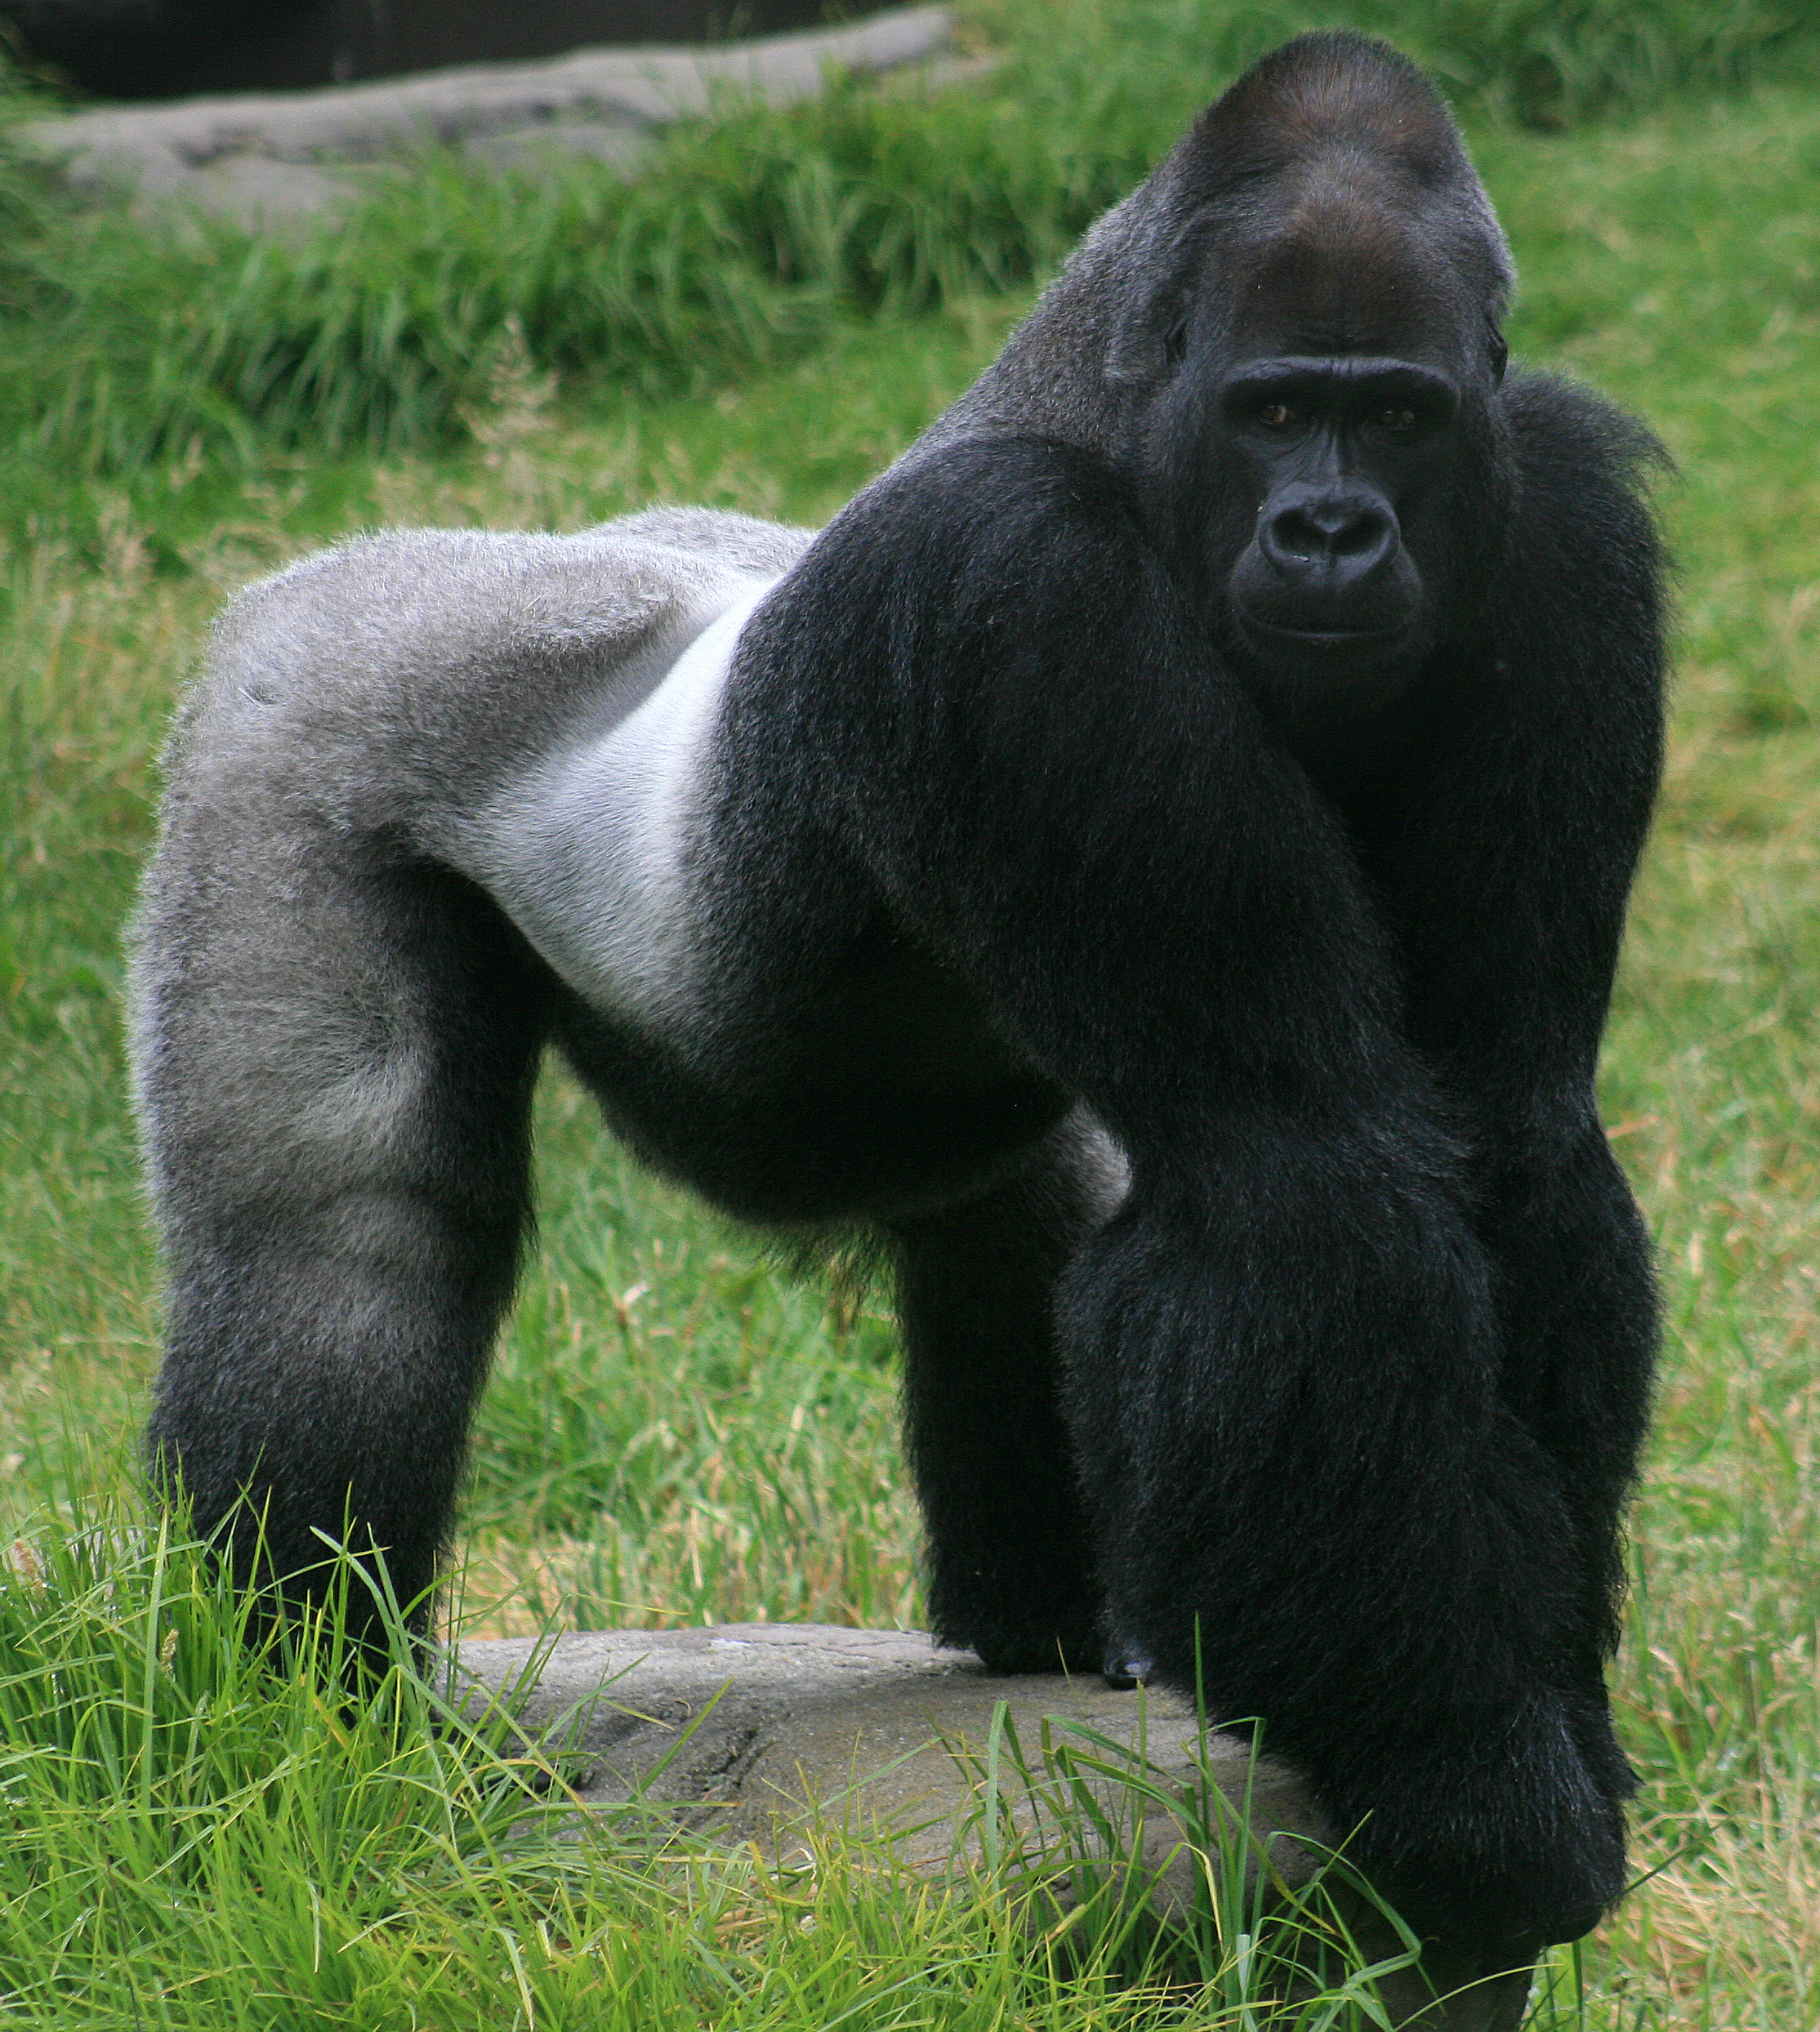 Gorilla - 02 photo